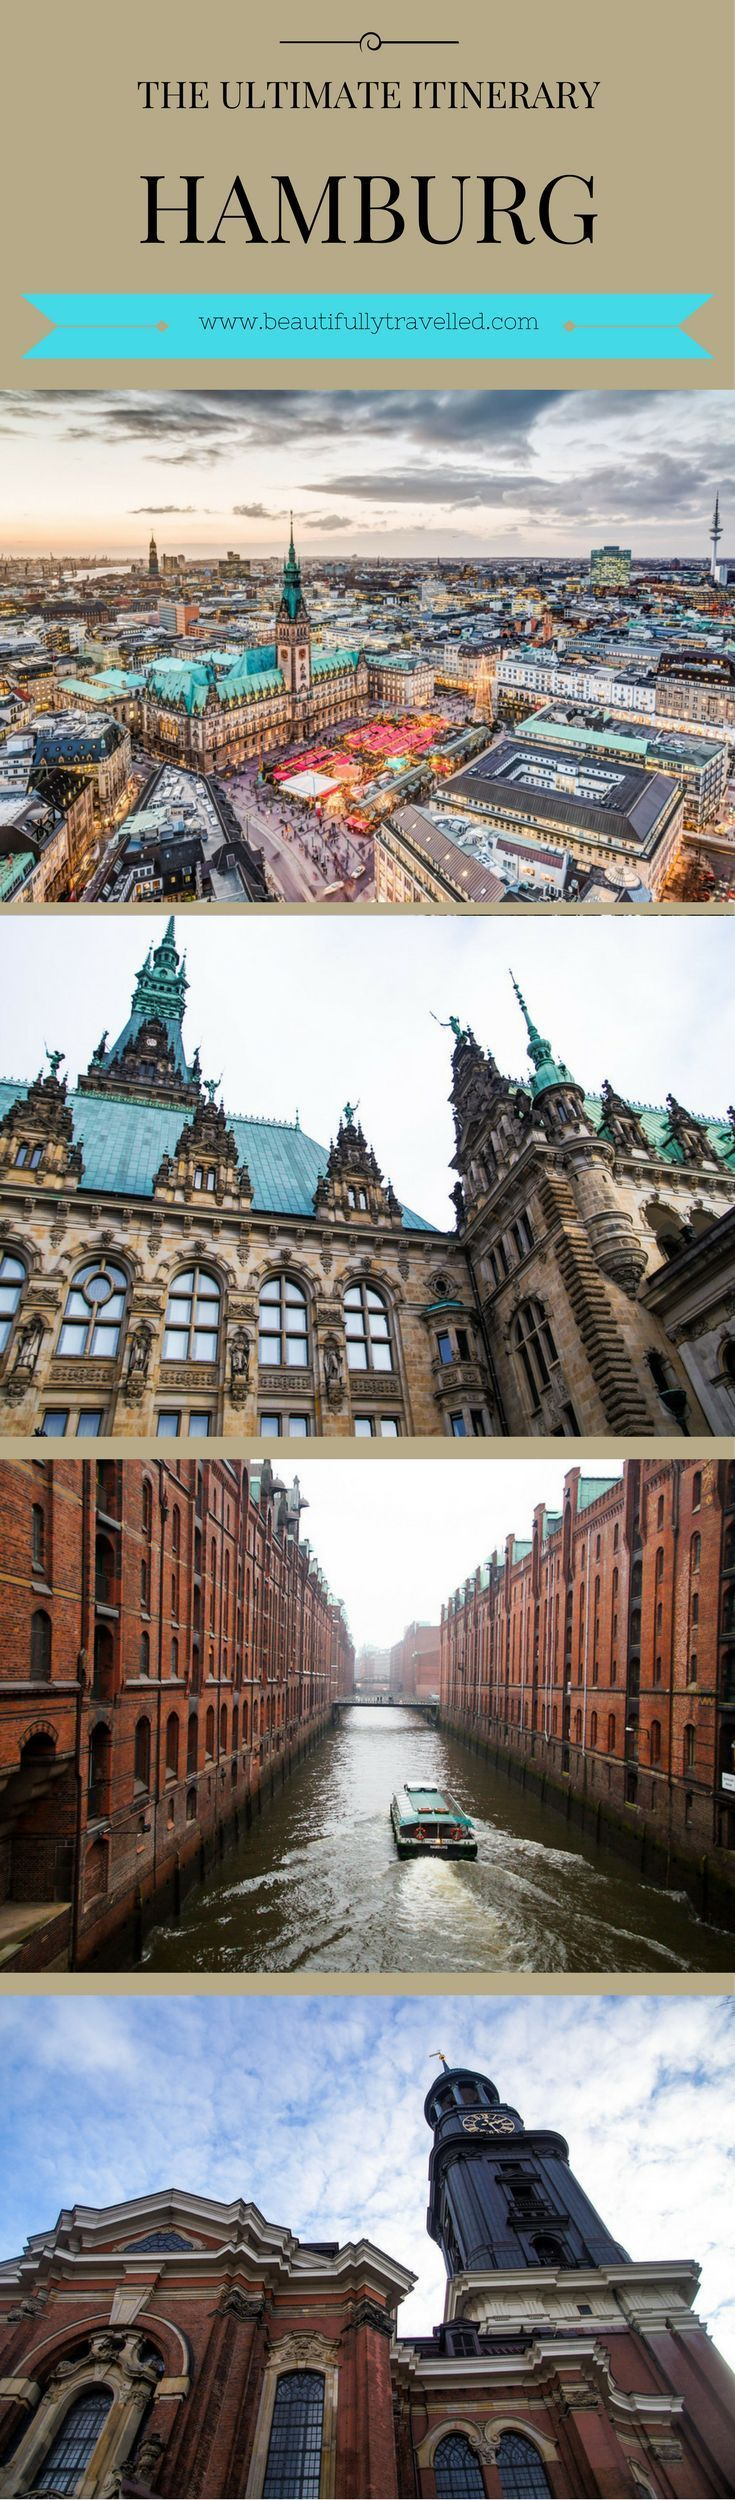 Hamburg is the ideal place for a city break – compact enough to explore by foot yet with multiple attractions worth exploring. However Situated on the bustling river Elbe, Hamburg is the second largest port in Europe. However, the city is home to much more than merchant ships. Grand historic buildings, beautiful lakes and canals, a museum dedicated to chocolate and plenty of Christmas markets are just a few of the highlights a visitor can experience in this epic city.